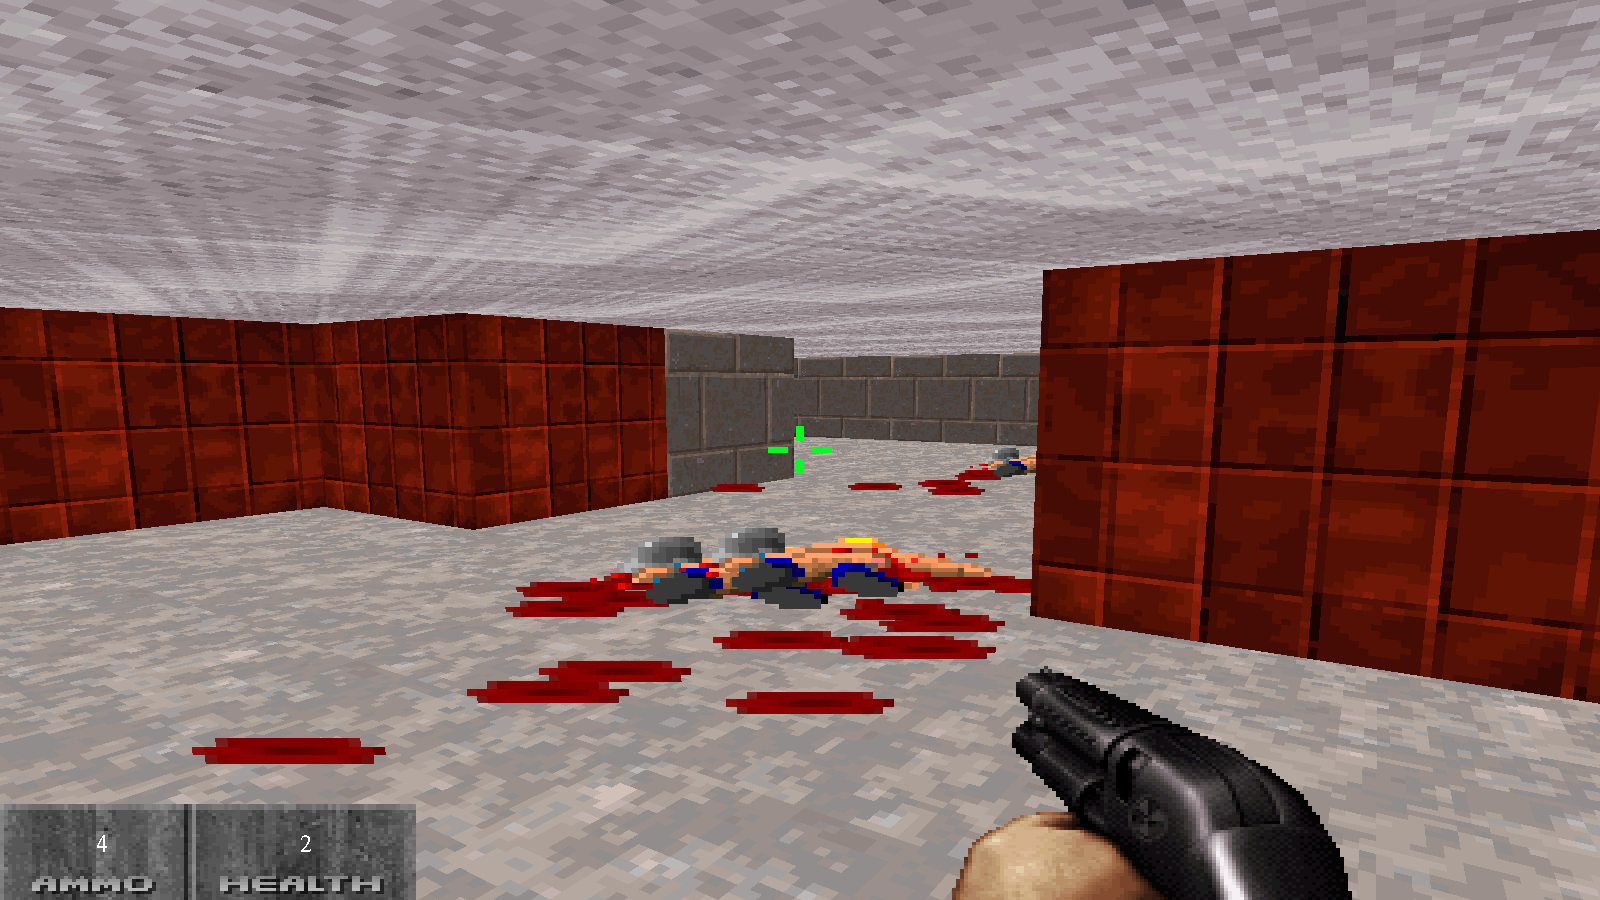 Код игры Doom Remake. Cpp, OpenGL